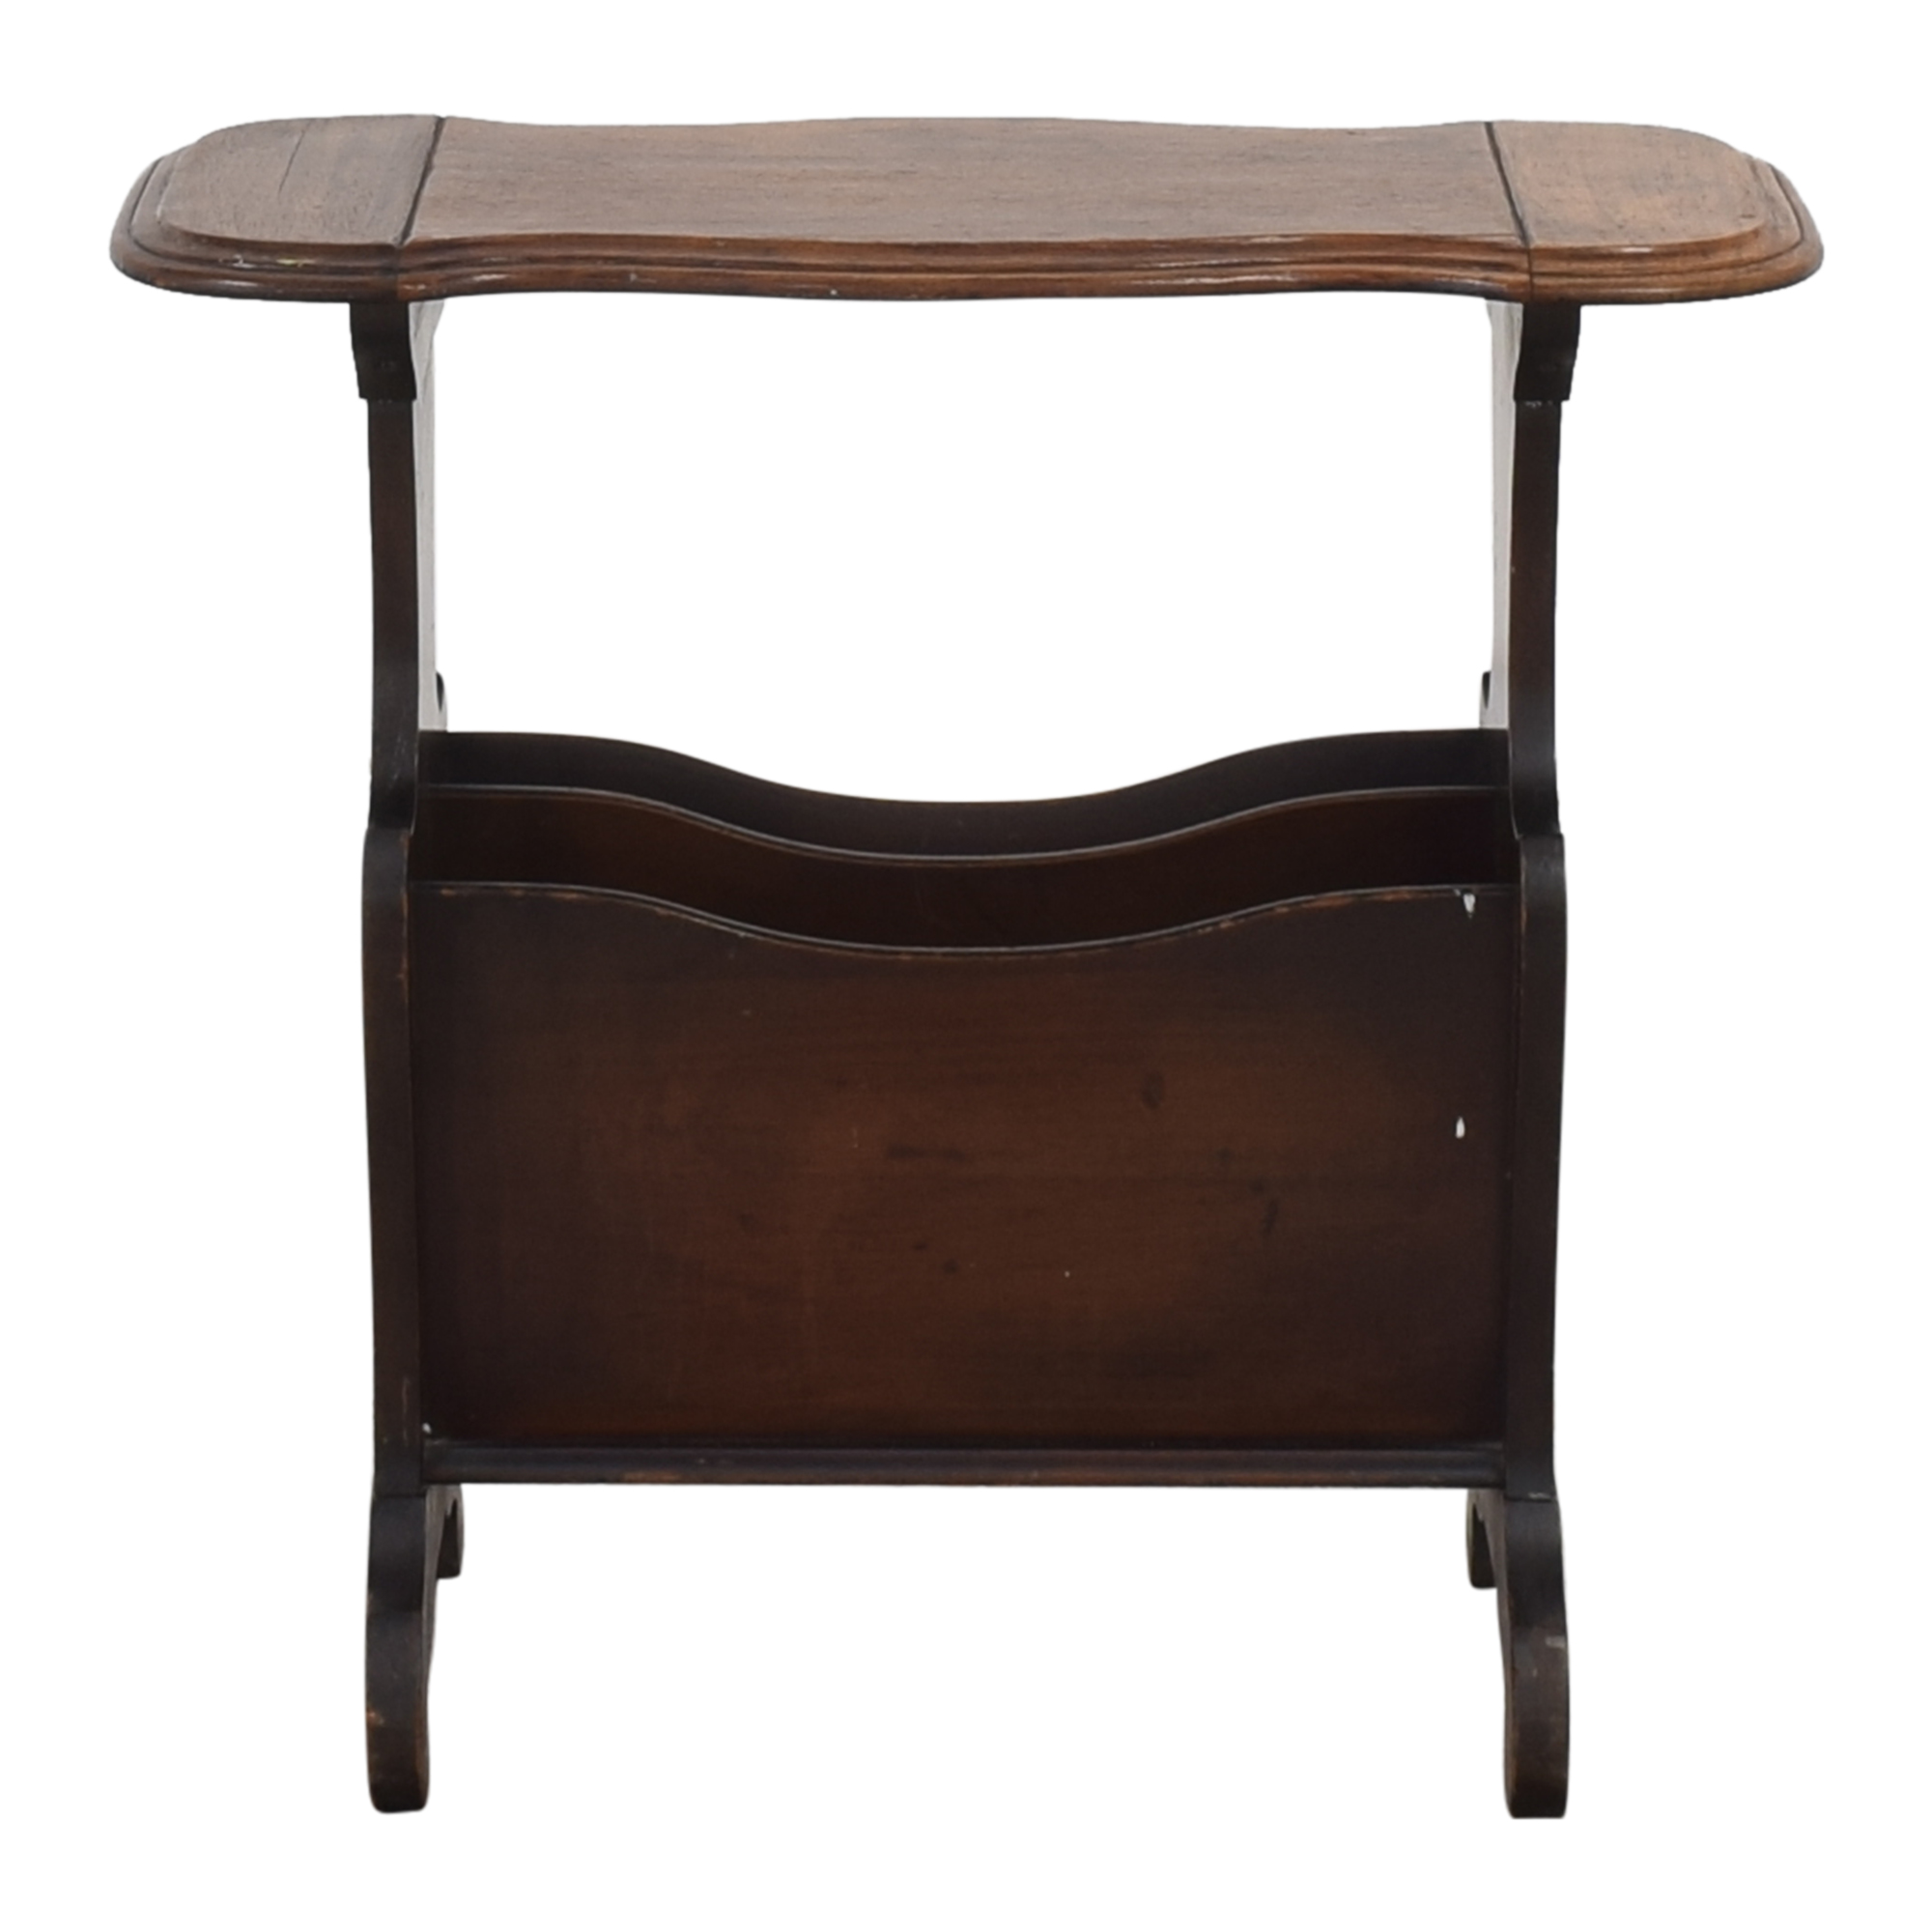 Vintage Accent Table / Tables